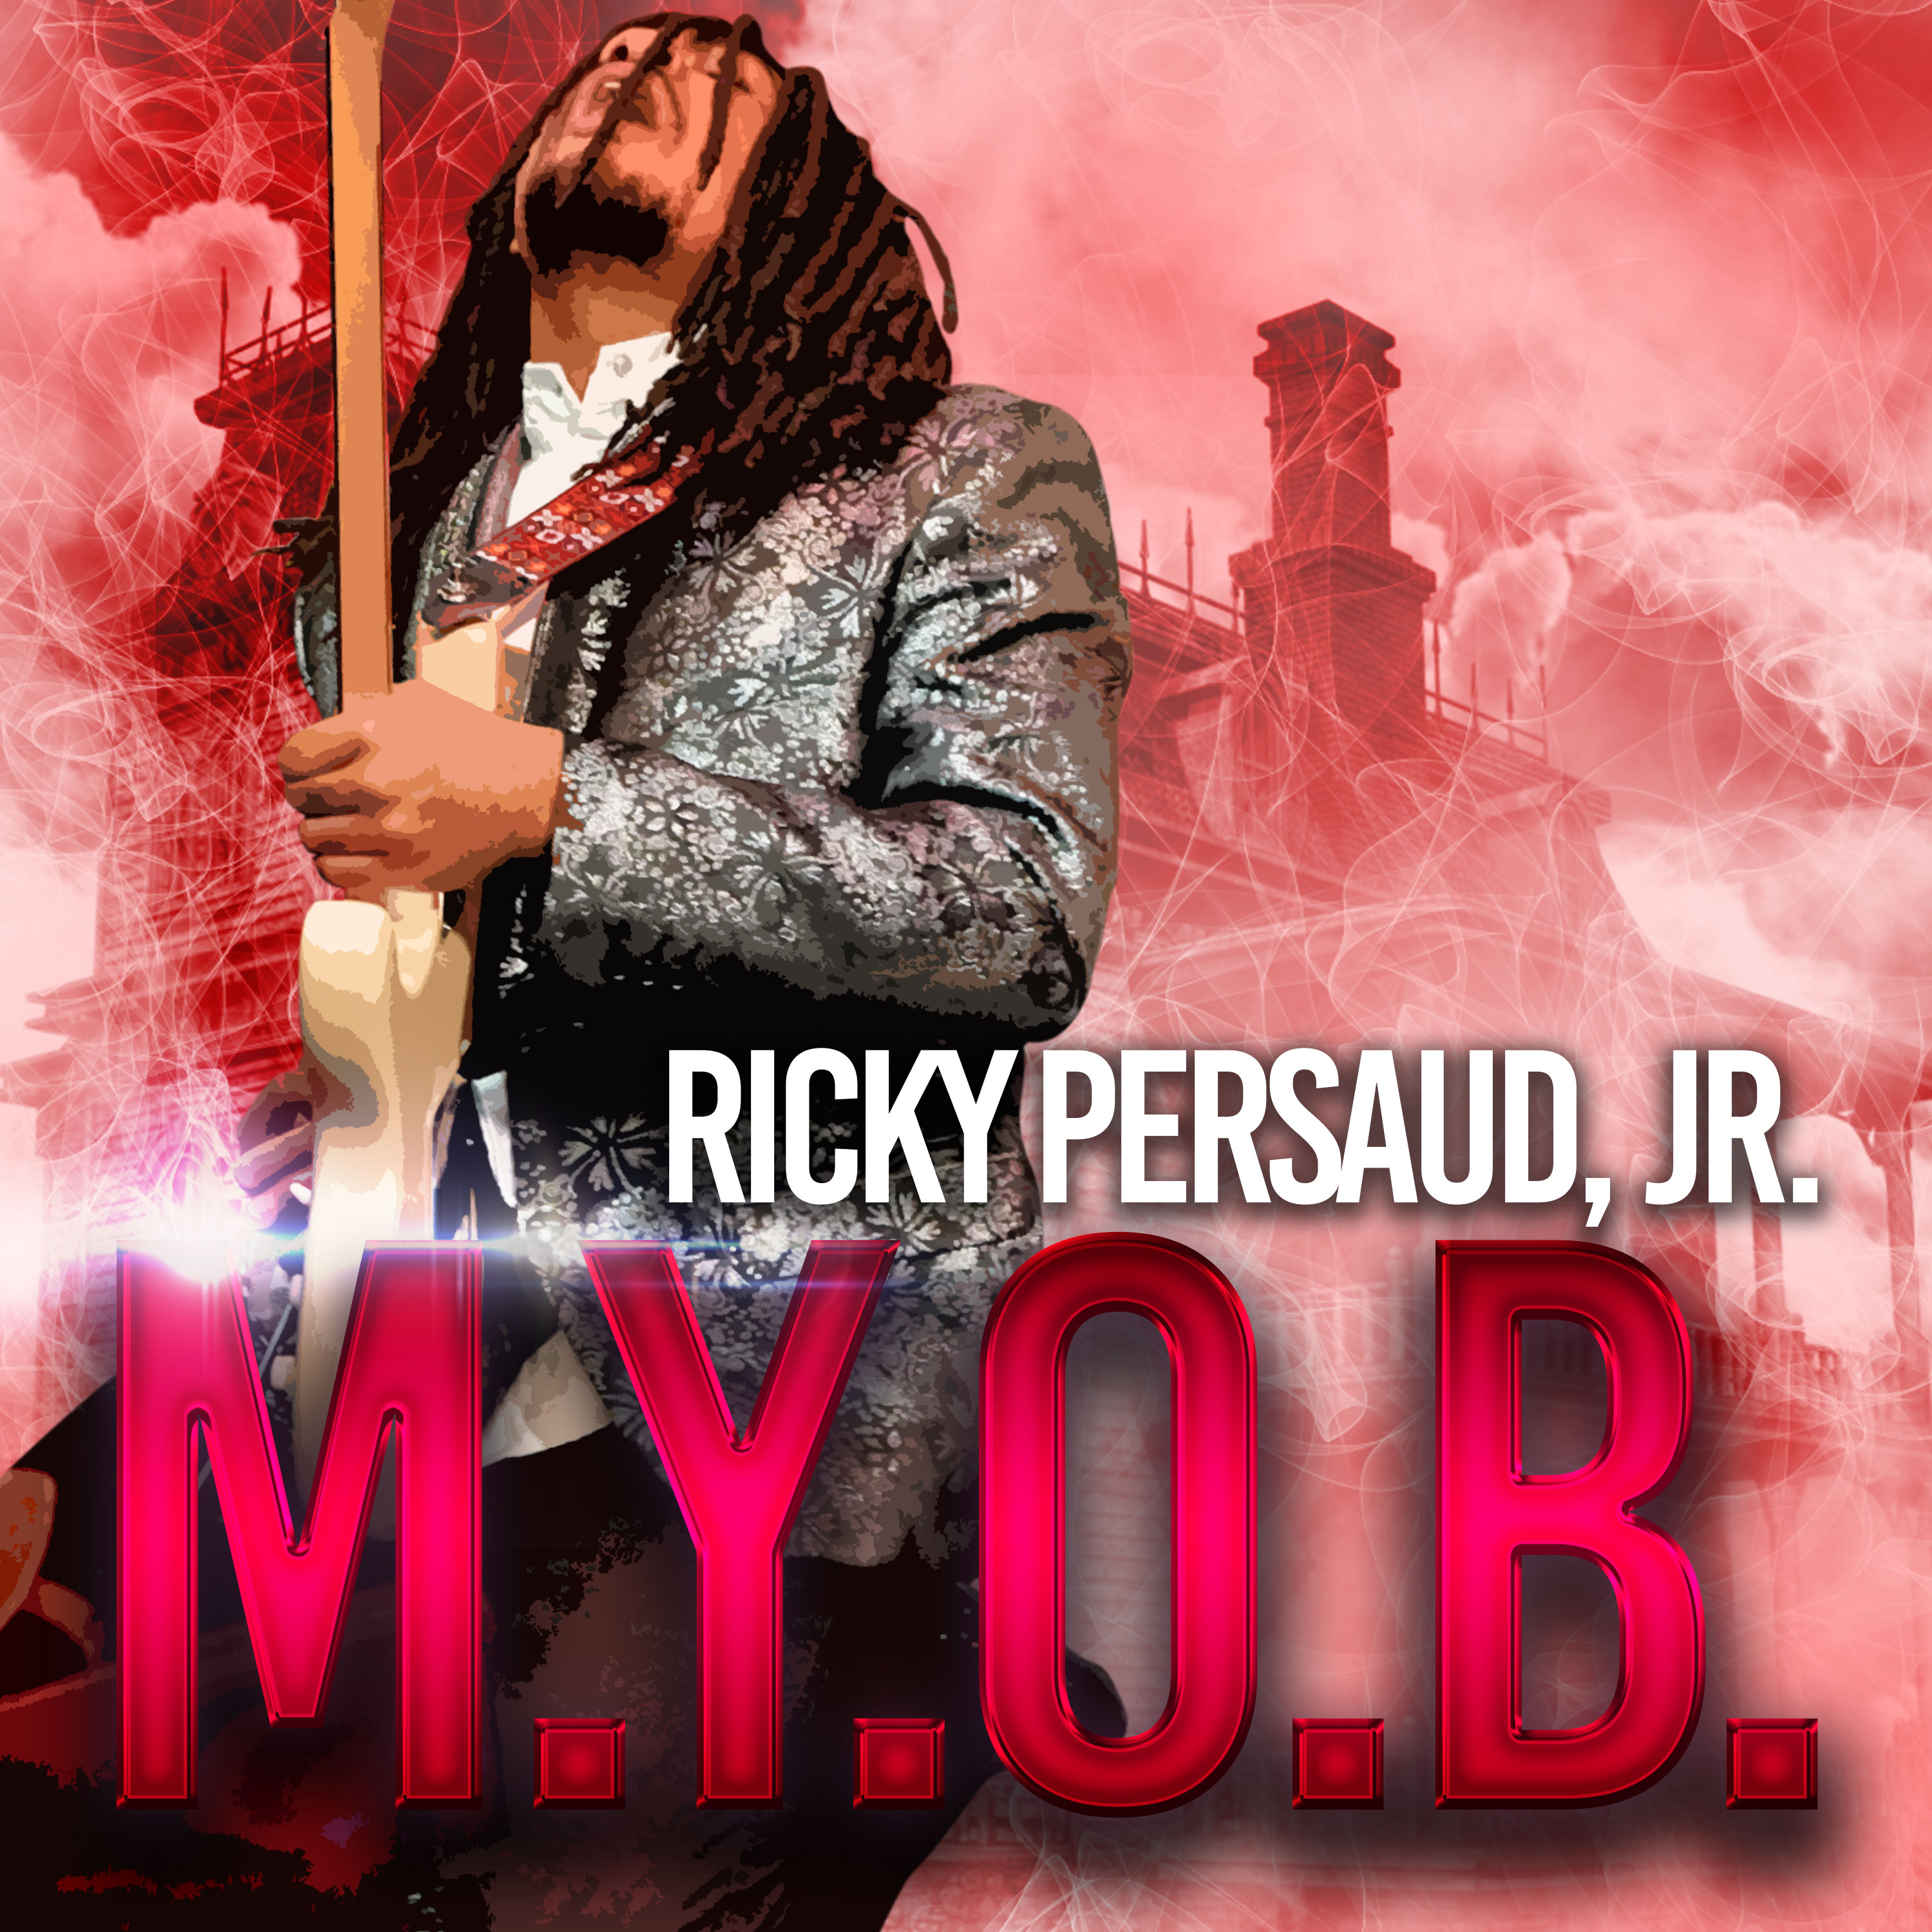 """Multi-Intrumentalist Ricky Persaud, Jr. Back with New Album; Follow Up to 2019 EPs Pursuit of Happiness and Apocalypse, First Single """"M.Y.O.B."""" Out Now"""